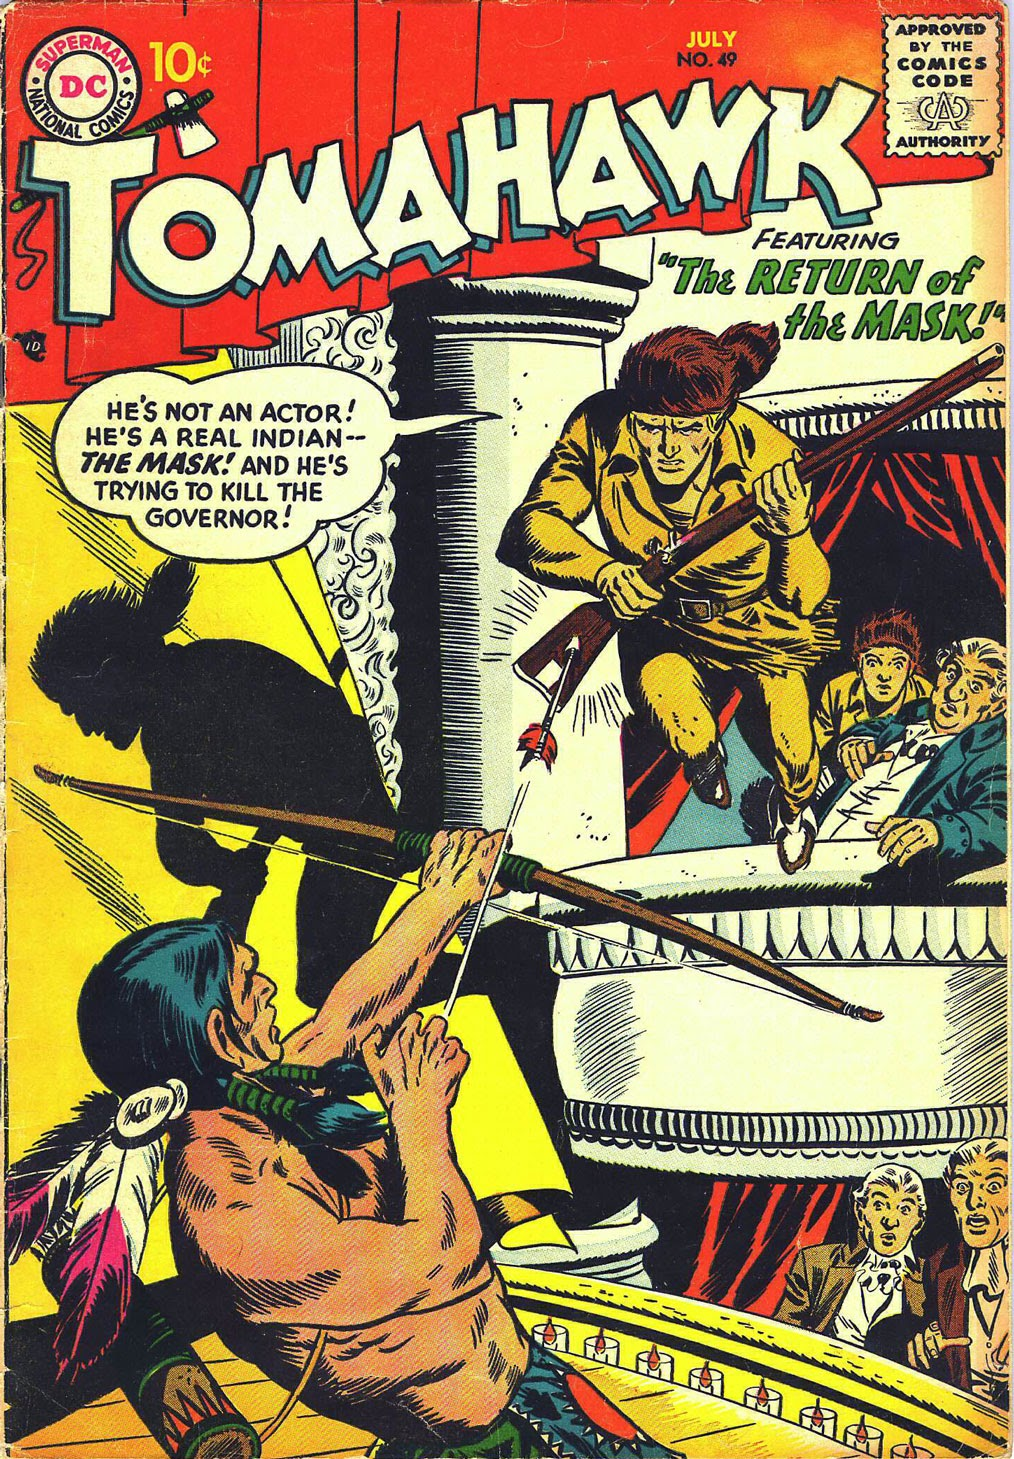 Read online Tomahawk comic -  Issue #49 - 1